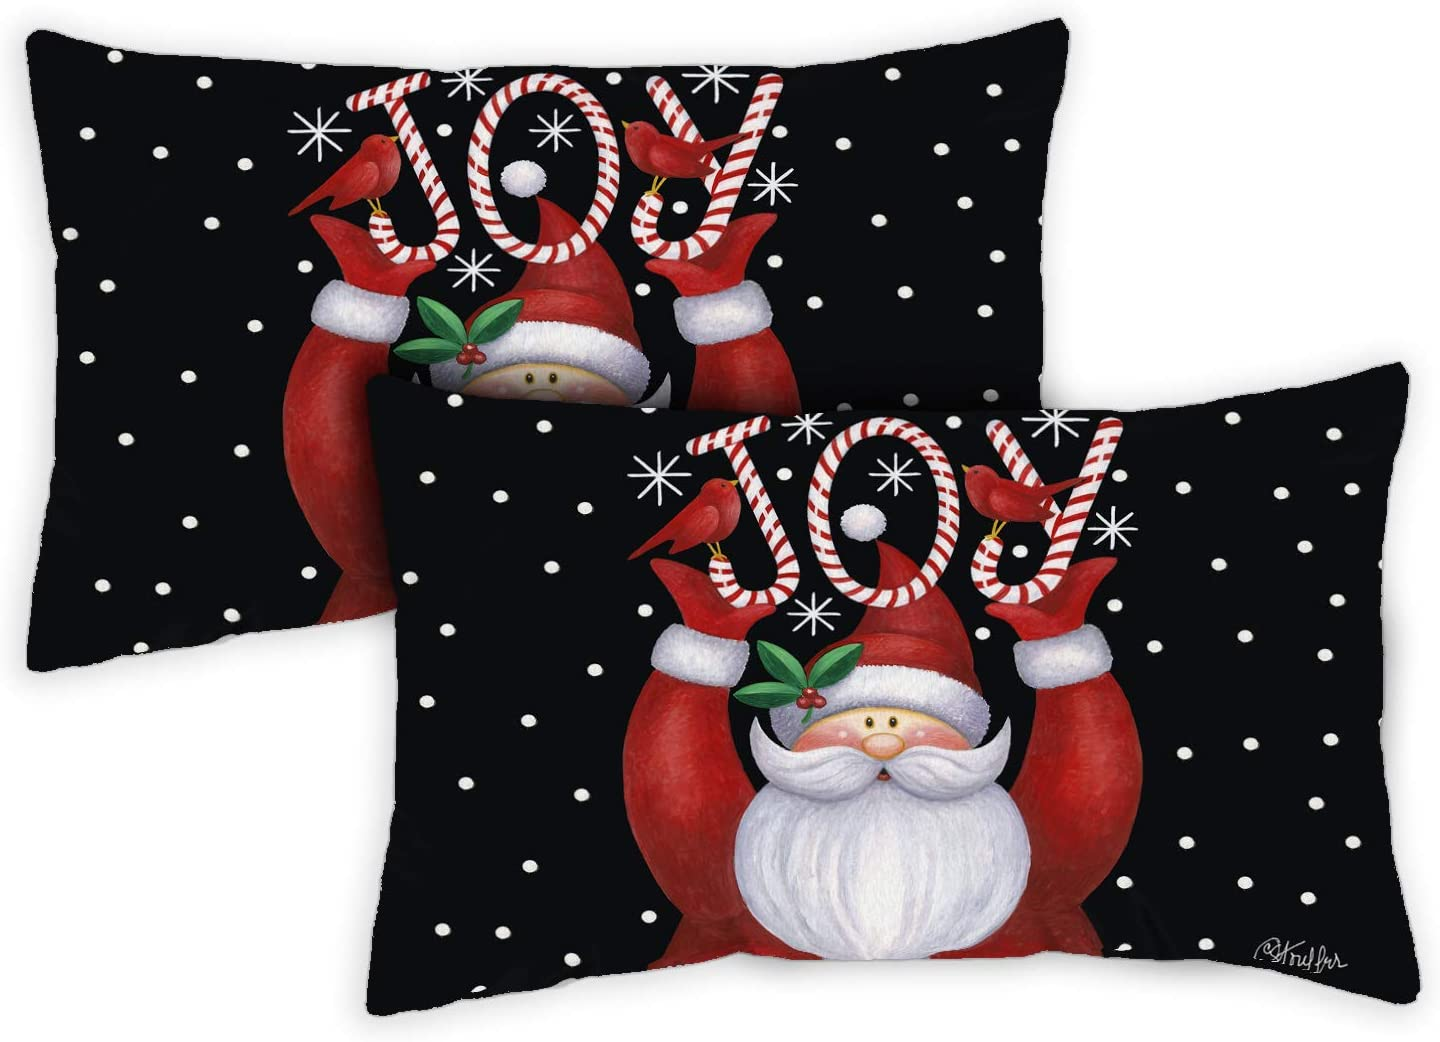 Toland Home Garden 771280 Santa Joy 12 x 19 Inch Indoor/Outdoor, Pillow Case (2-Pack)